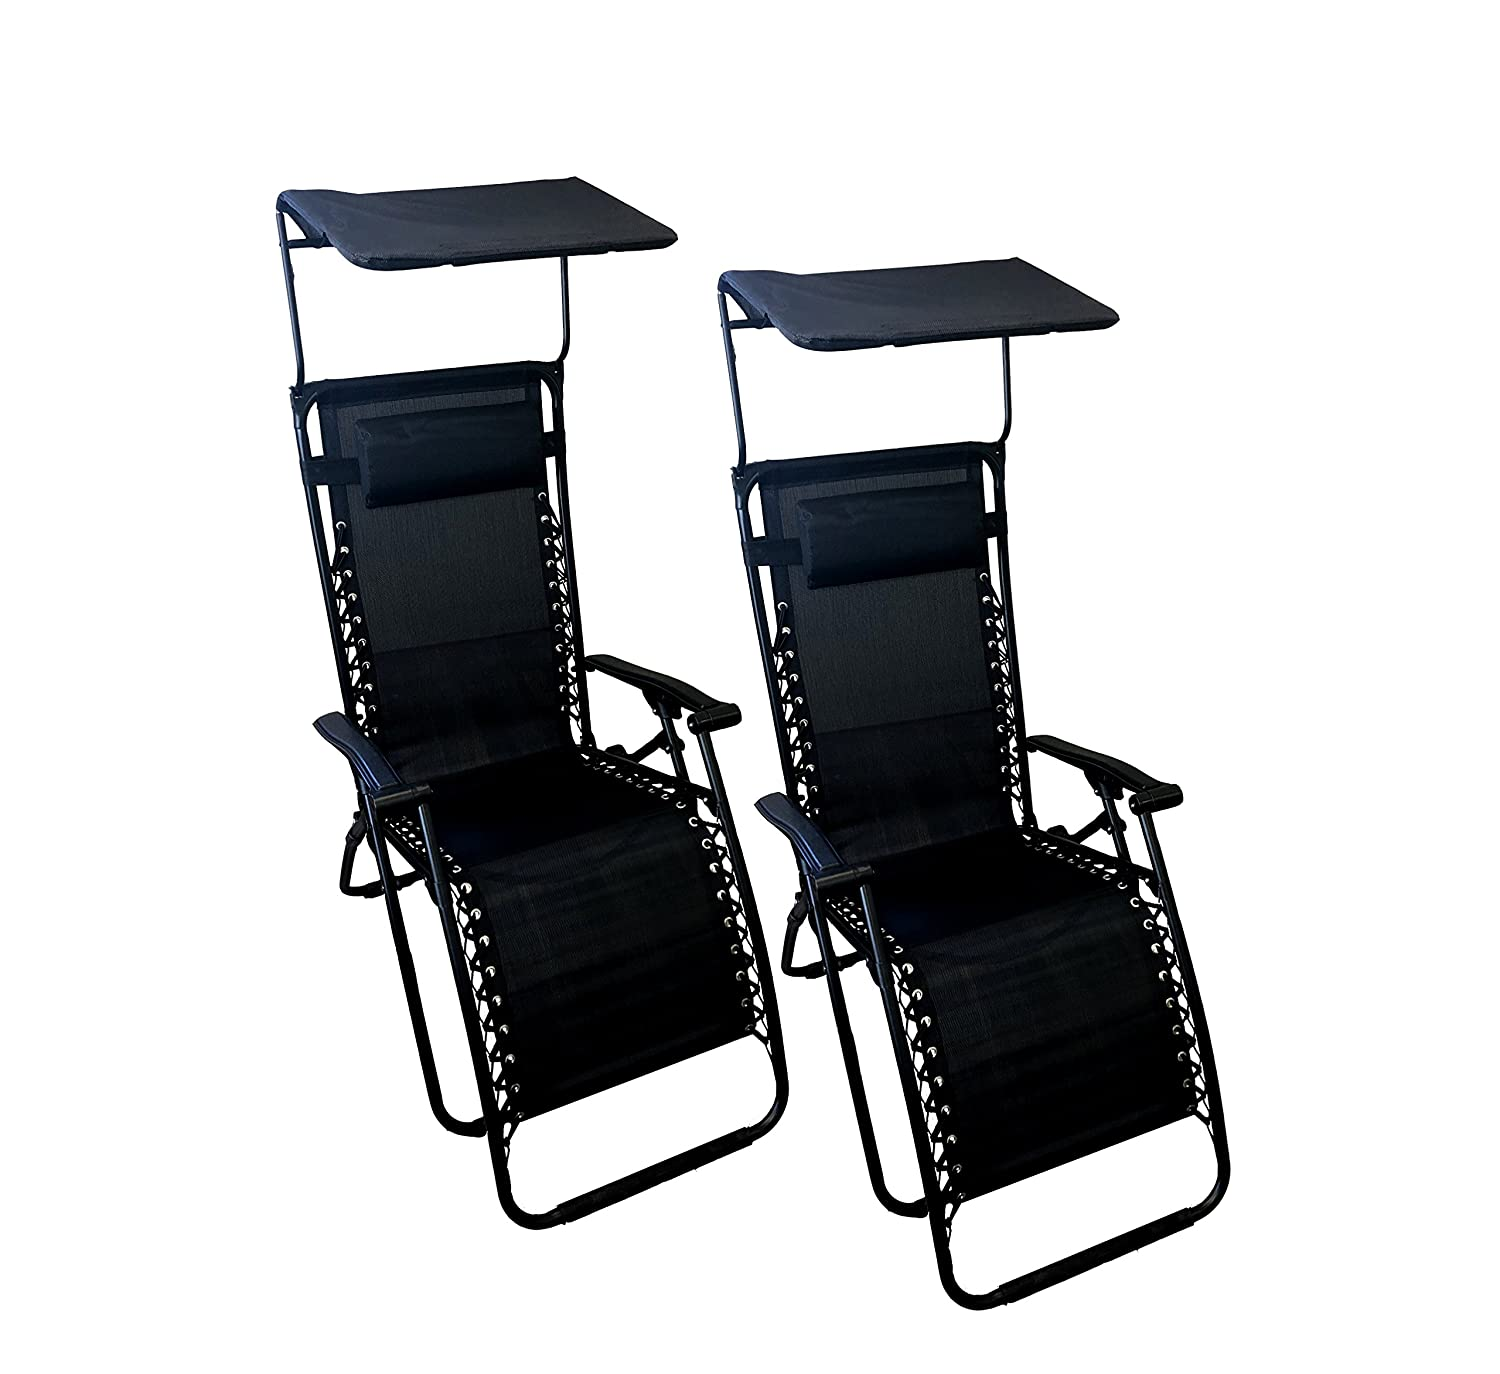 Astonishing World Famous Sports Zero Gravity Lounge Chair With Sunshade 2 Pack Machost Co Dining Chair Design Ideas Machostcouk